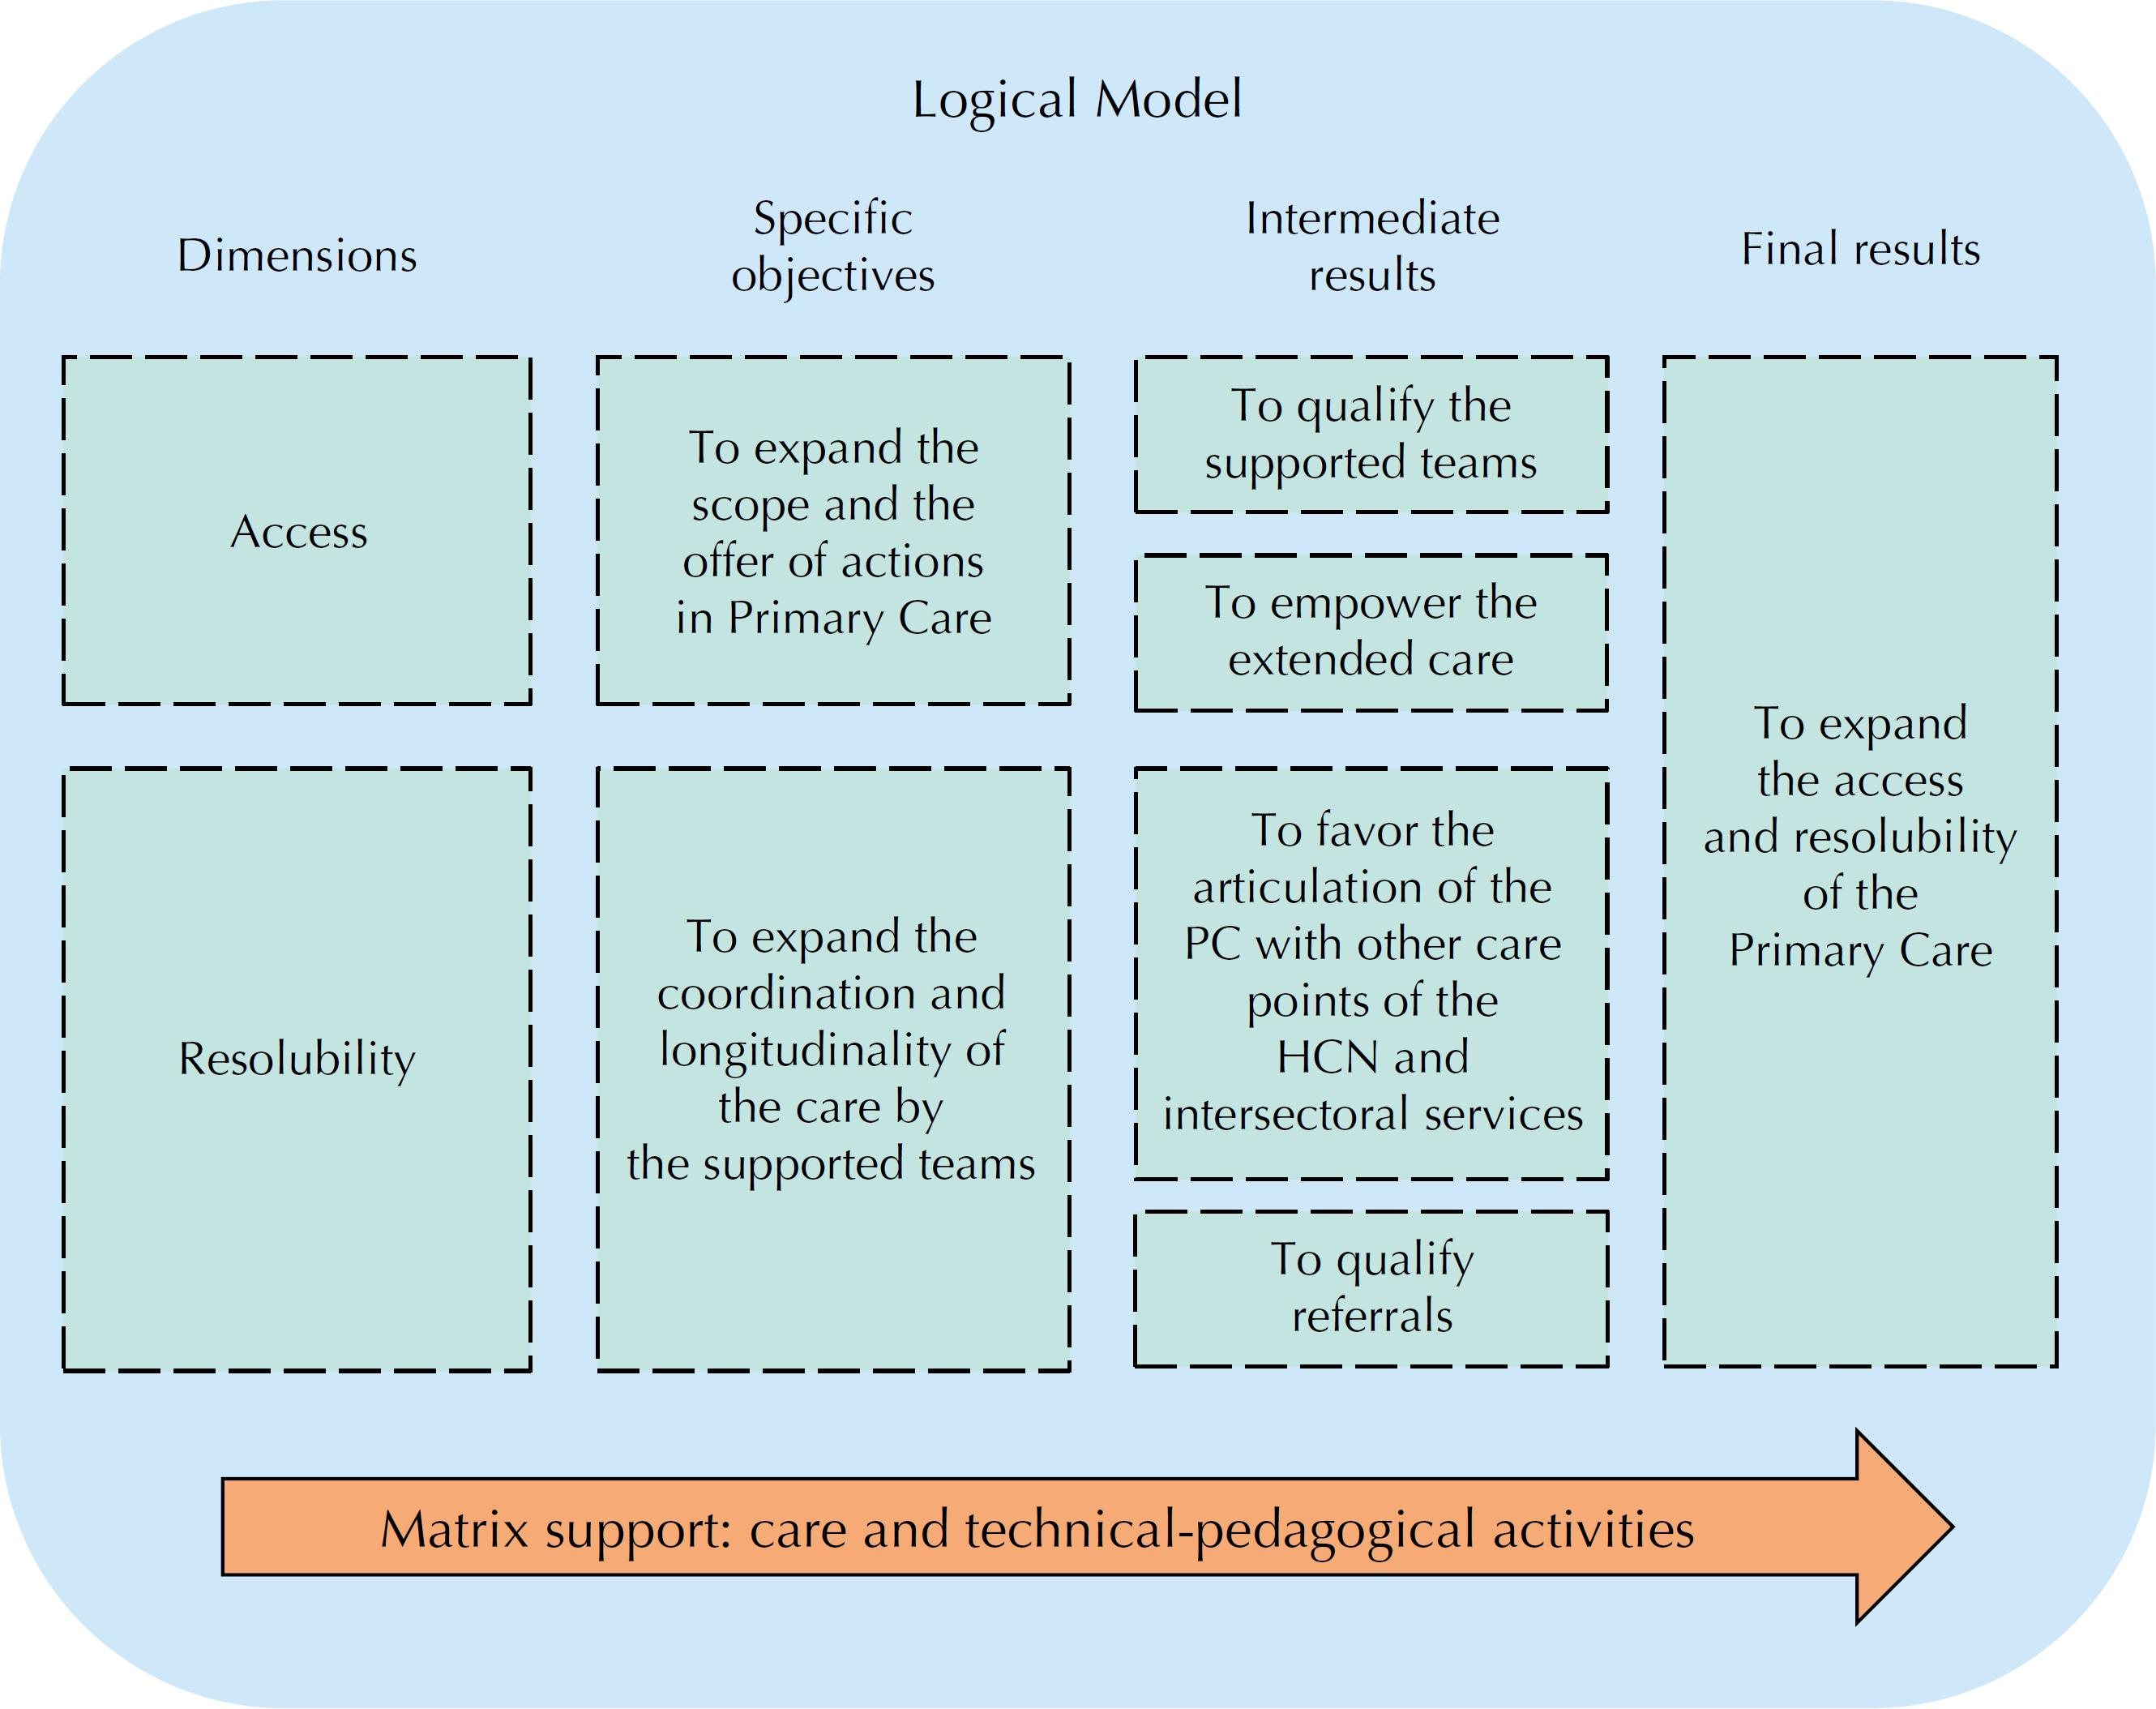 Schematic representation of the logical model of the results achieved by the Family Health Support Centers focused on expanding the access and resolubility in Primary Care.